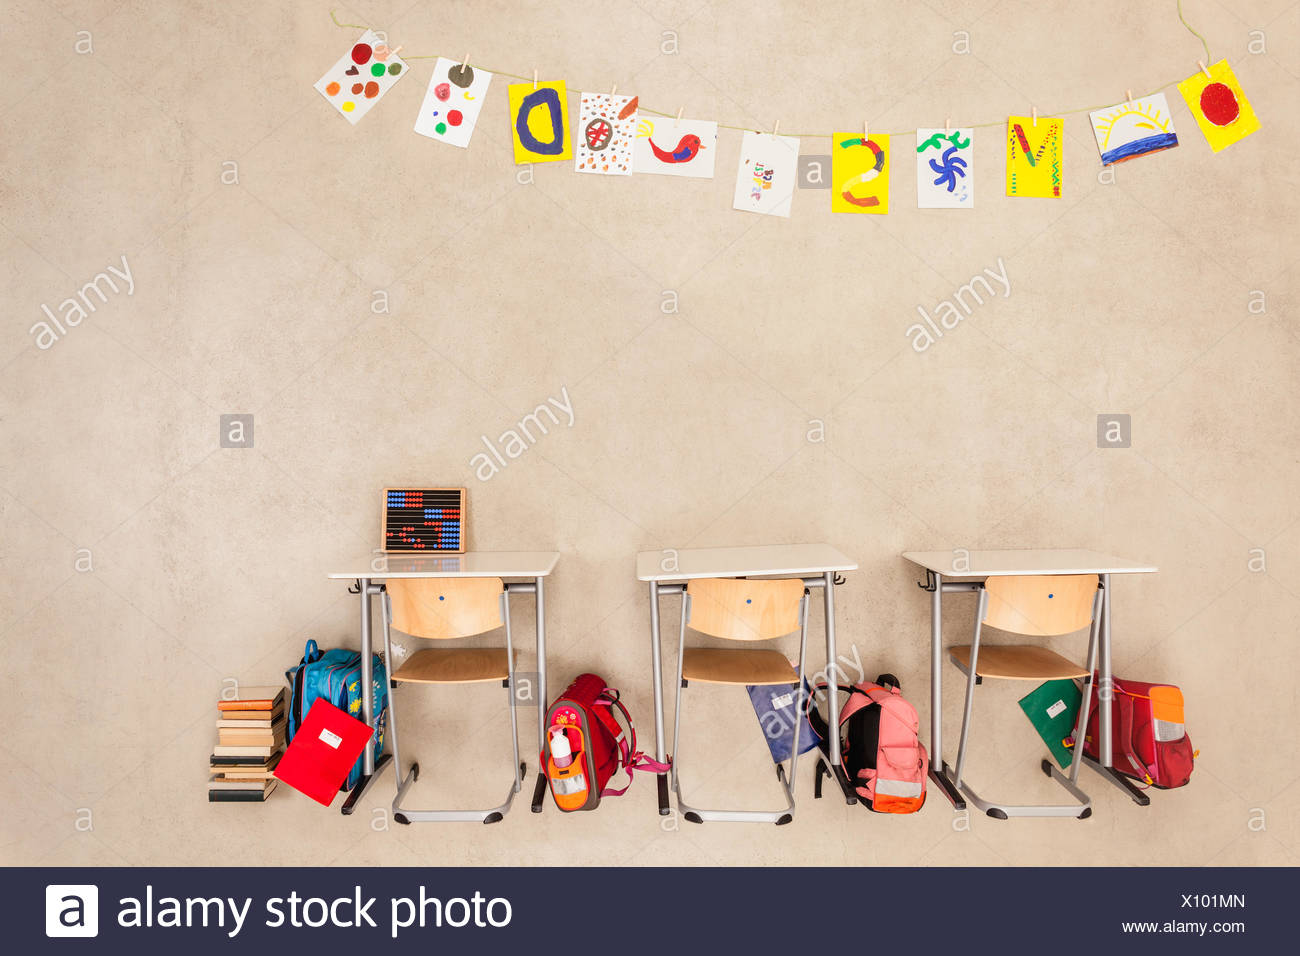 School things in class room - Stock Image